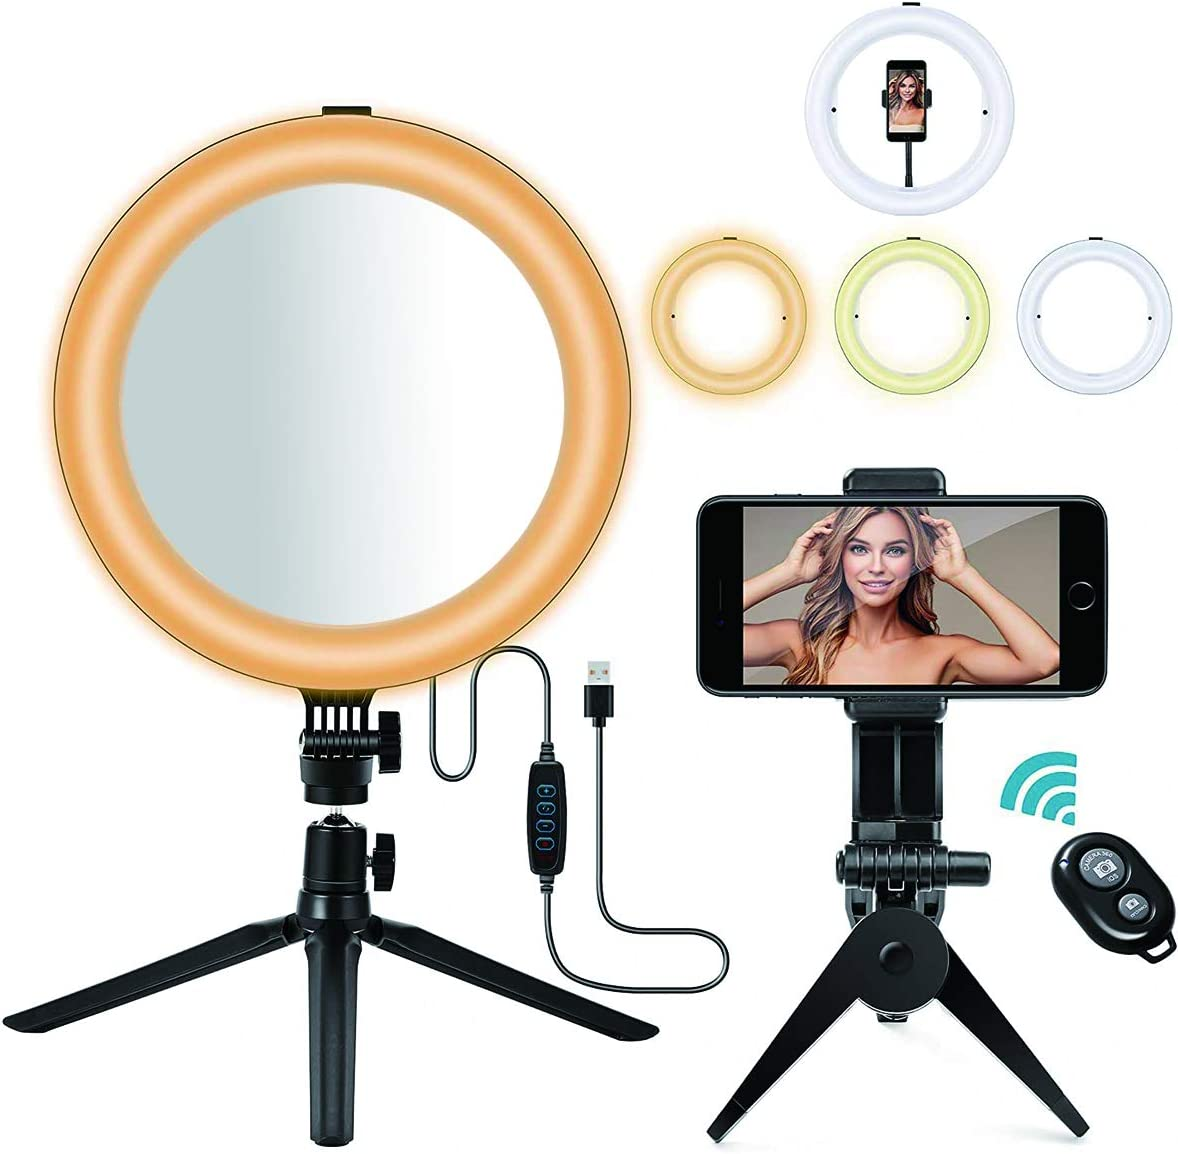 """LED Ring Light, MACTREM 10"""" Selfie Ring Light with Tripod Stand & Mirror & Phone Holder, Dimmable Desk Makeup Ring Light Perfect for Live Streaming & YouTube Video, Photography"""